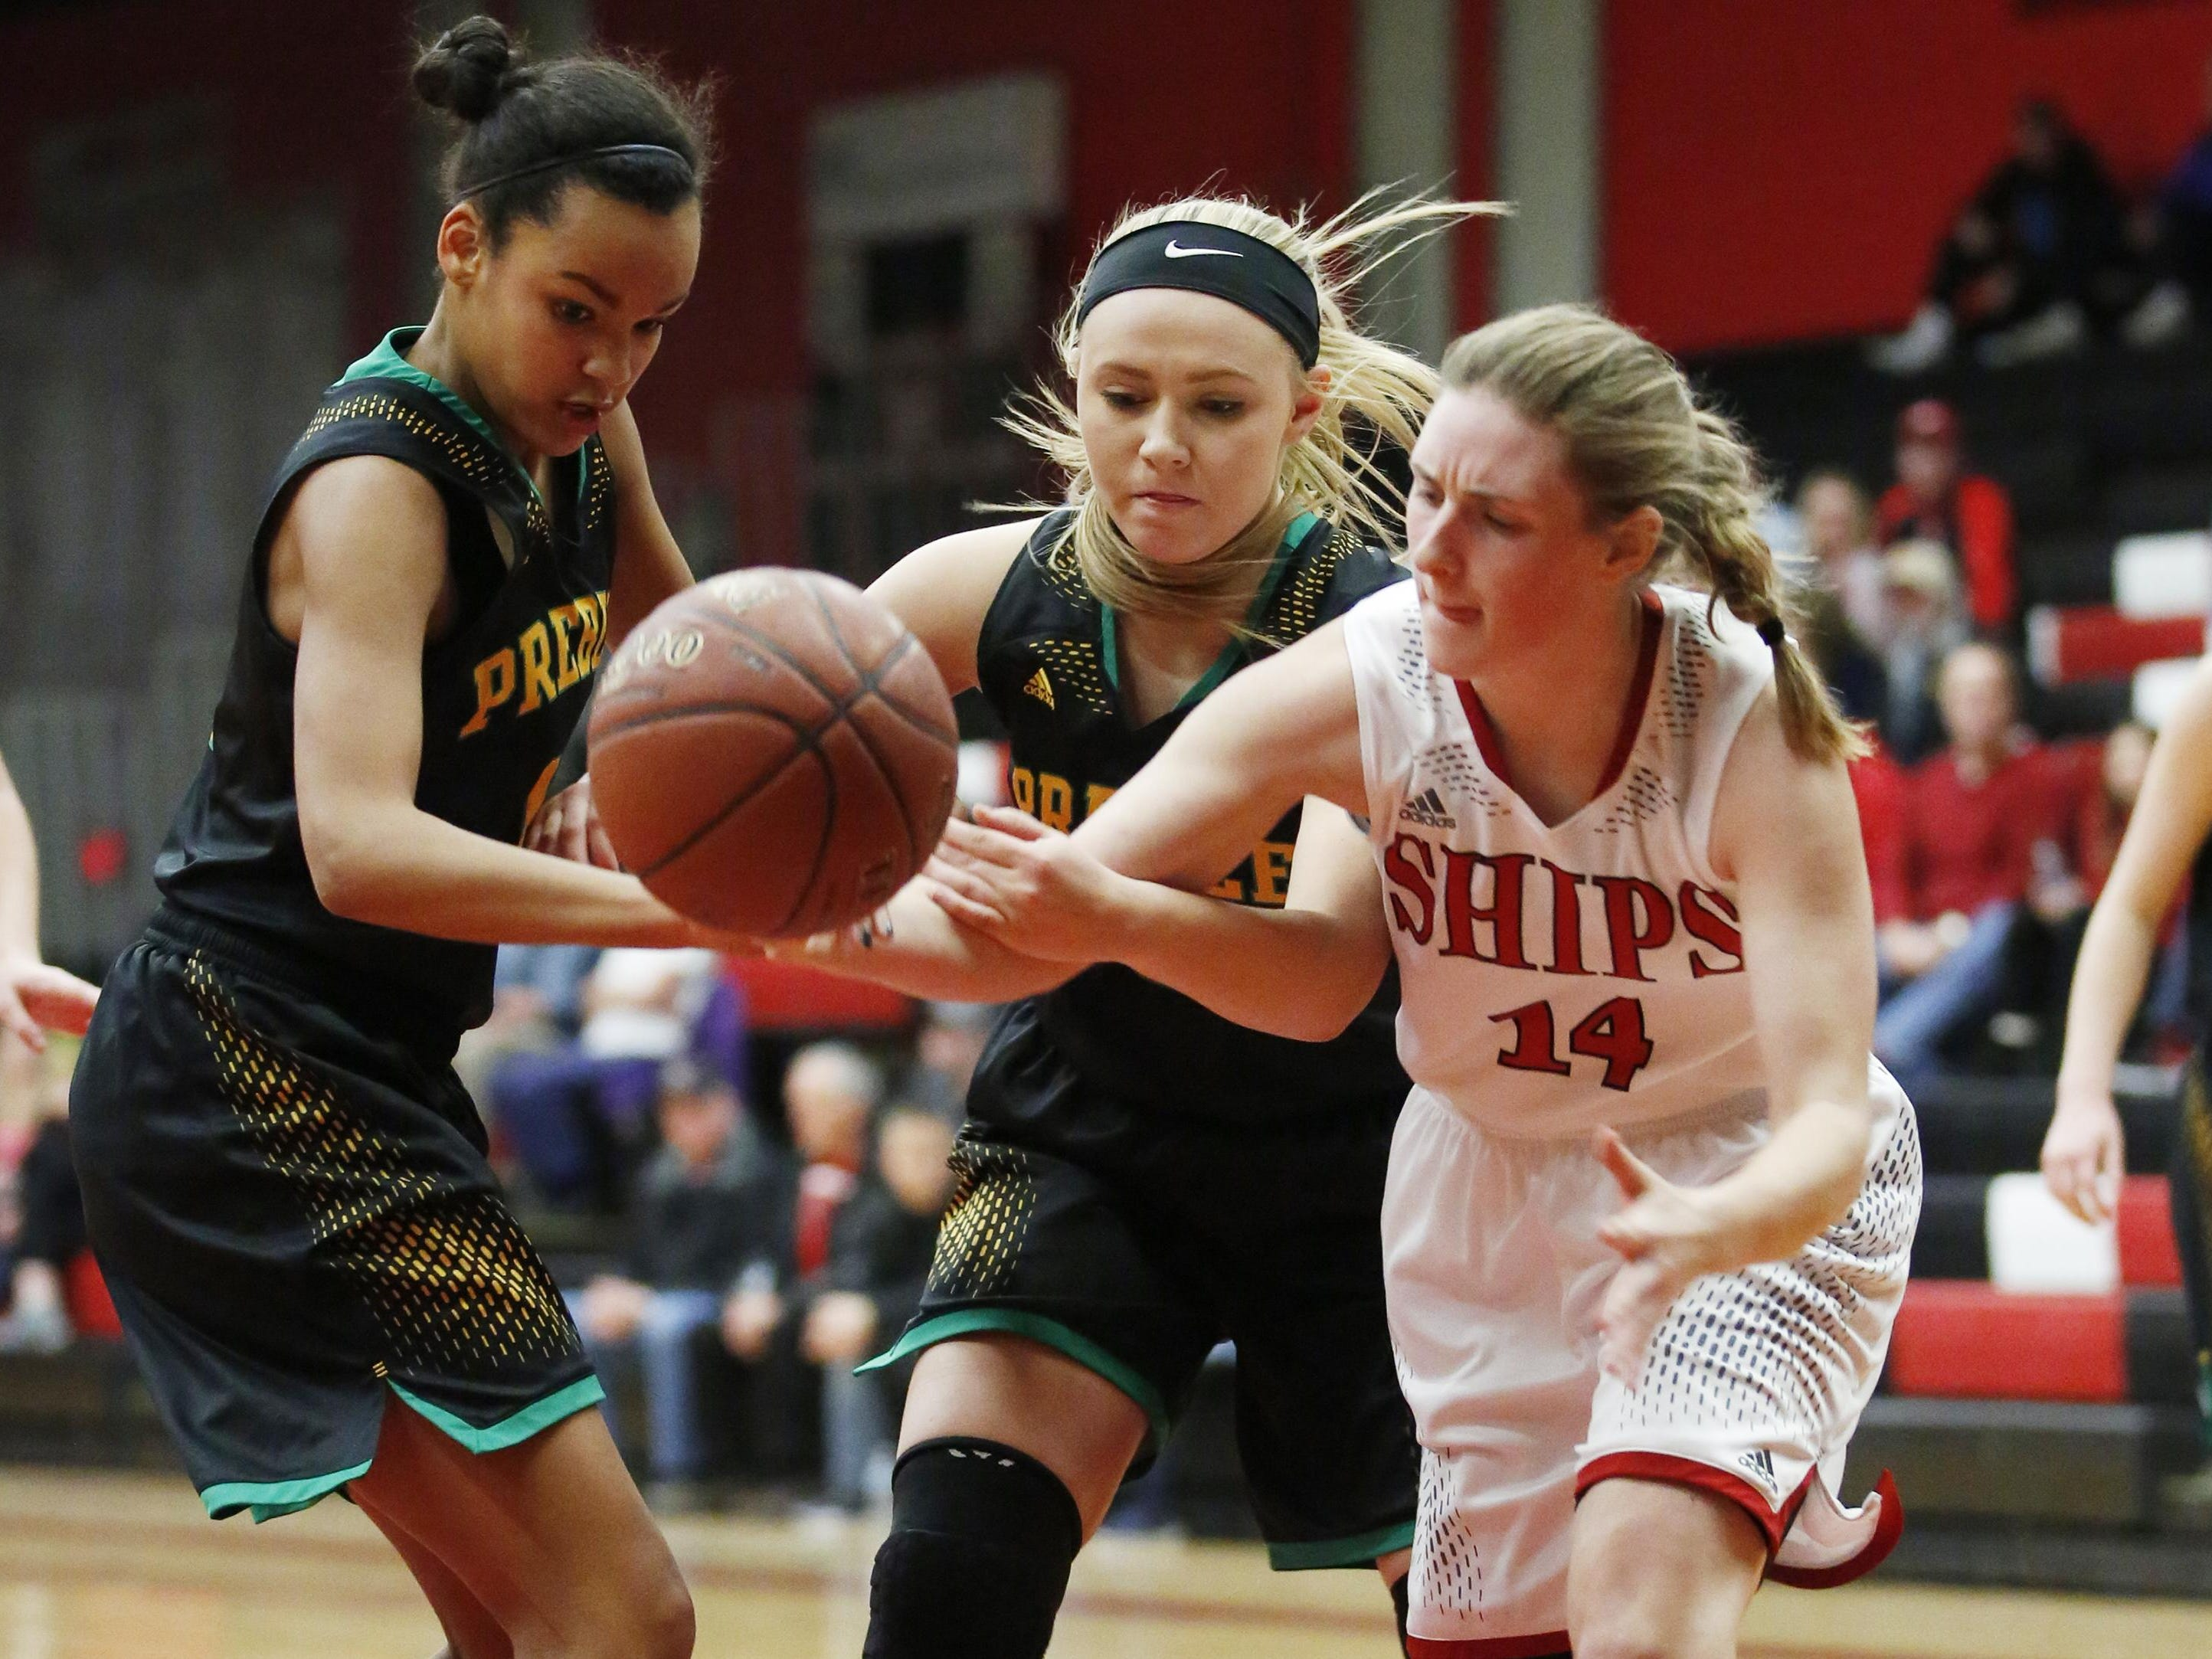 Green Bay Preble players battle with Manitowoc for a loose ball on Tuesday in Manty.